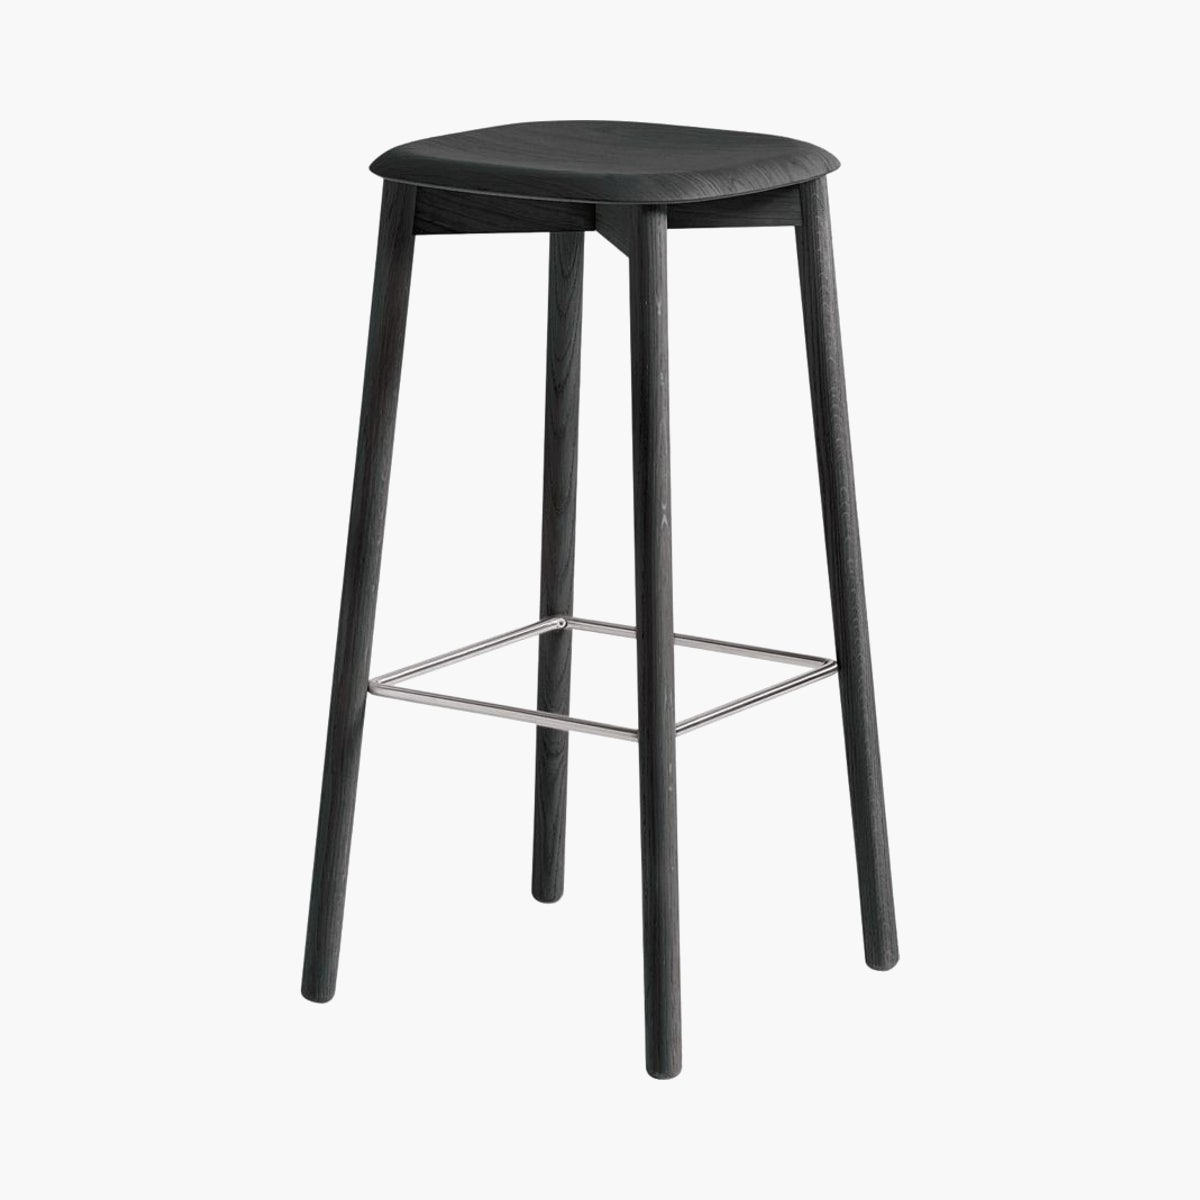 Soft Edge 32 Stool